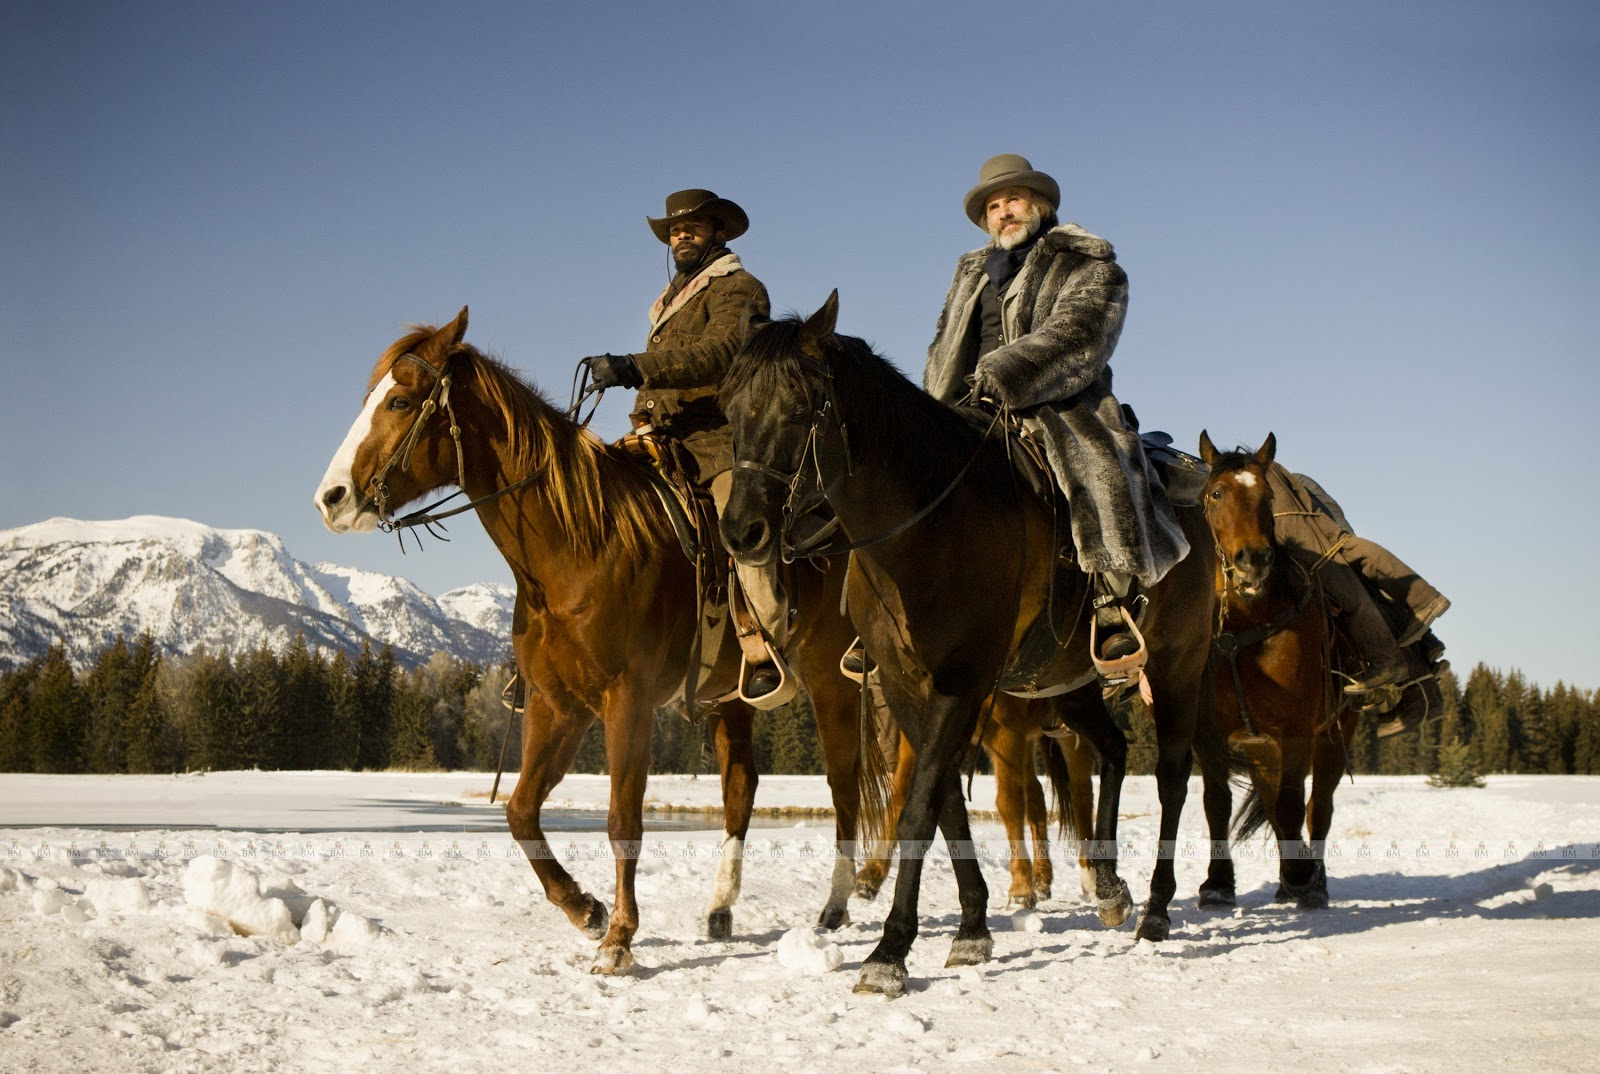 django-unchained-movie-stills__458010.jp